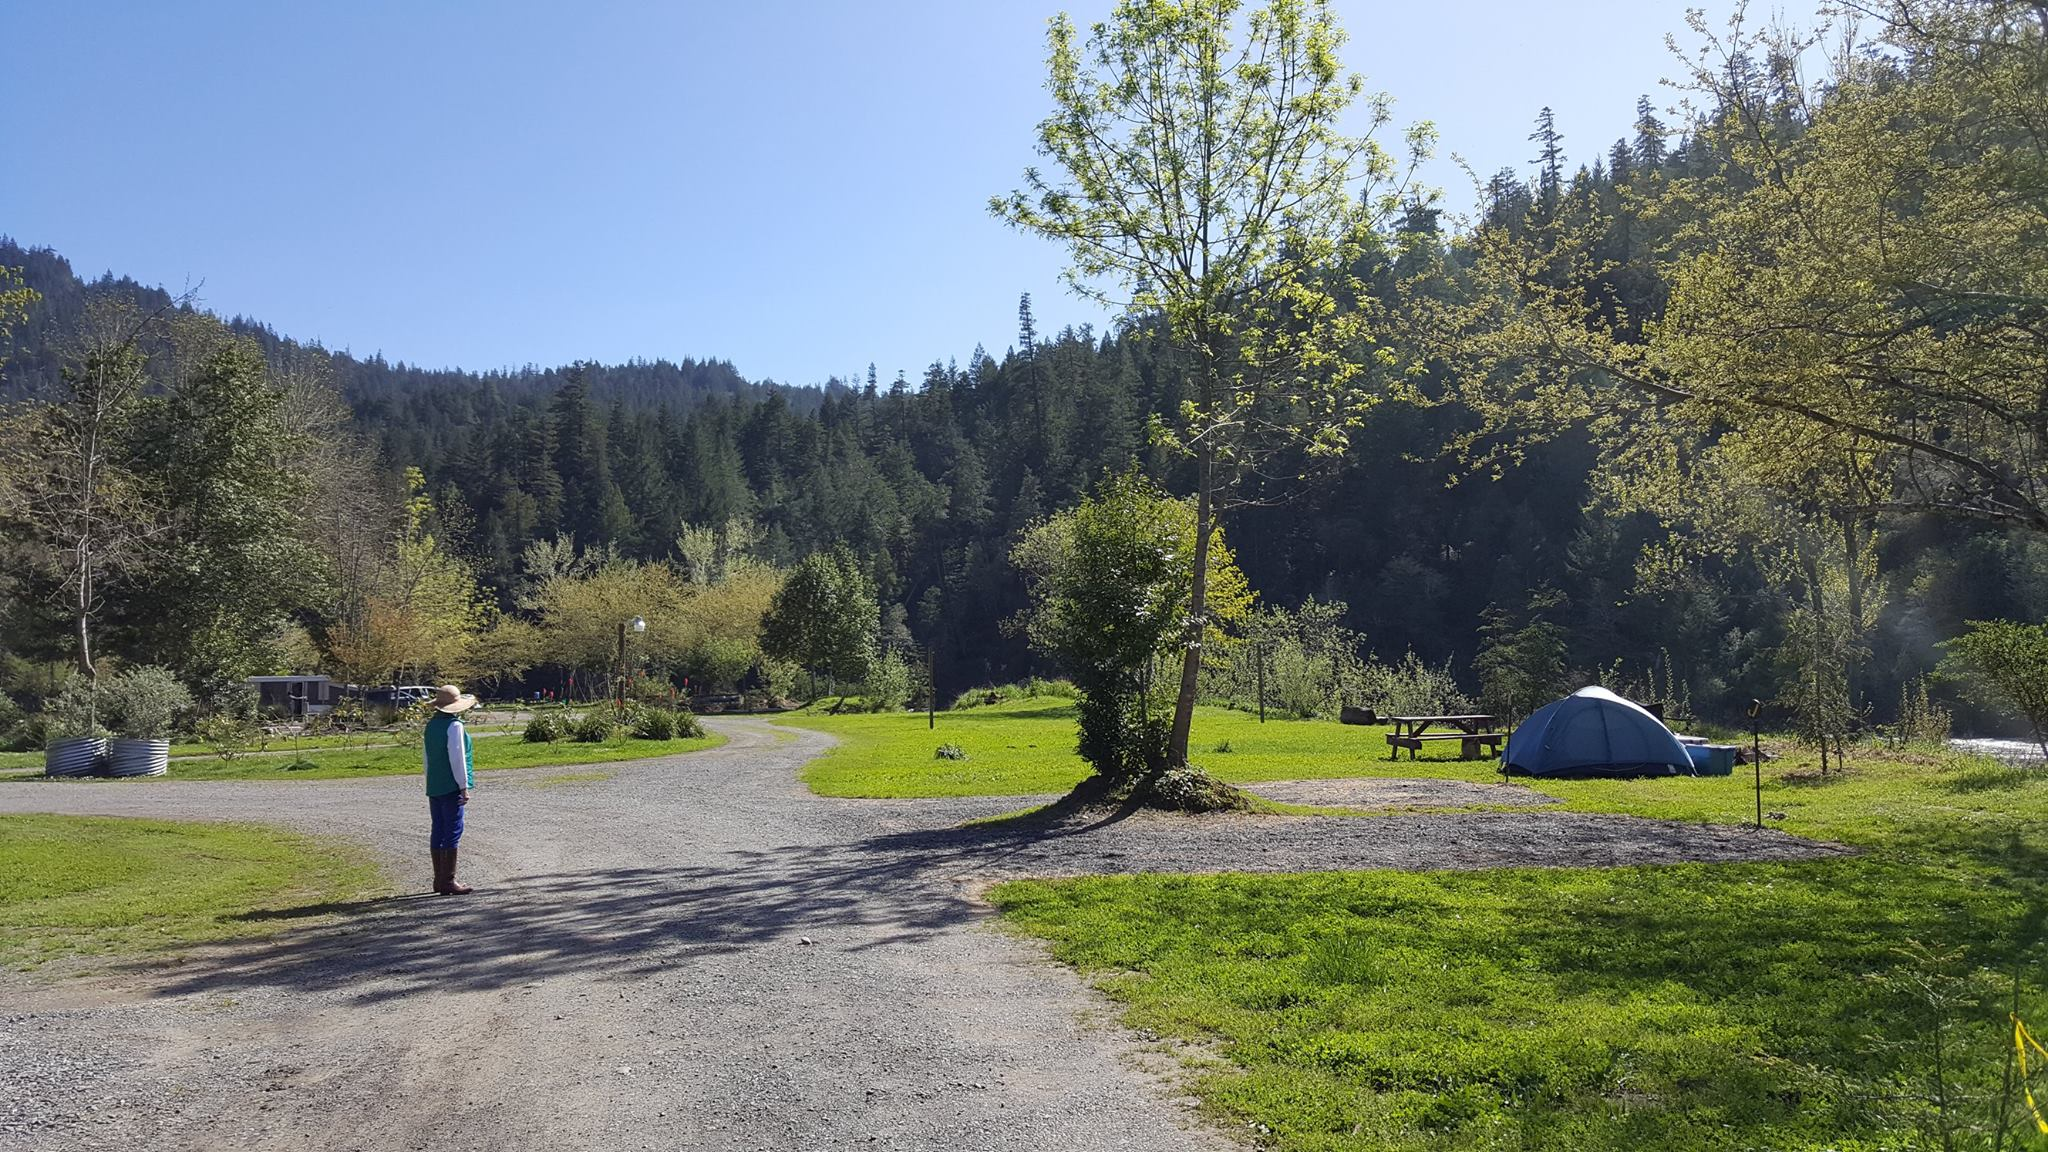 Giant Redwoods Rv Park Amp Camp Myers Flat Ca Resort